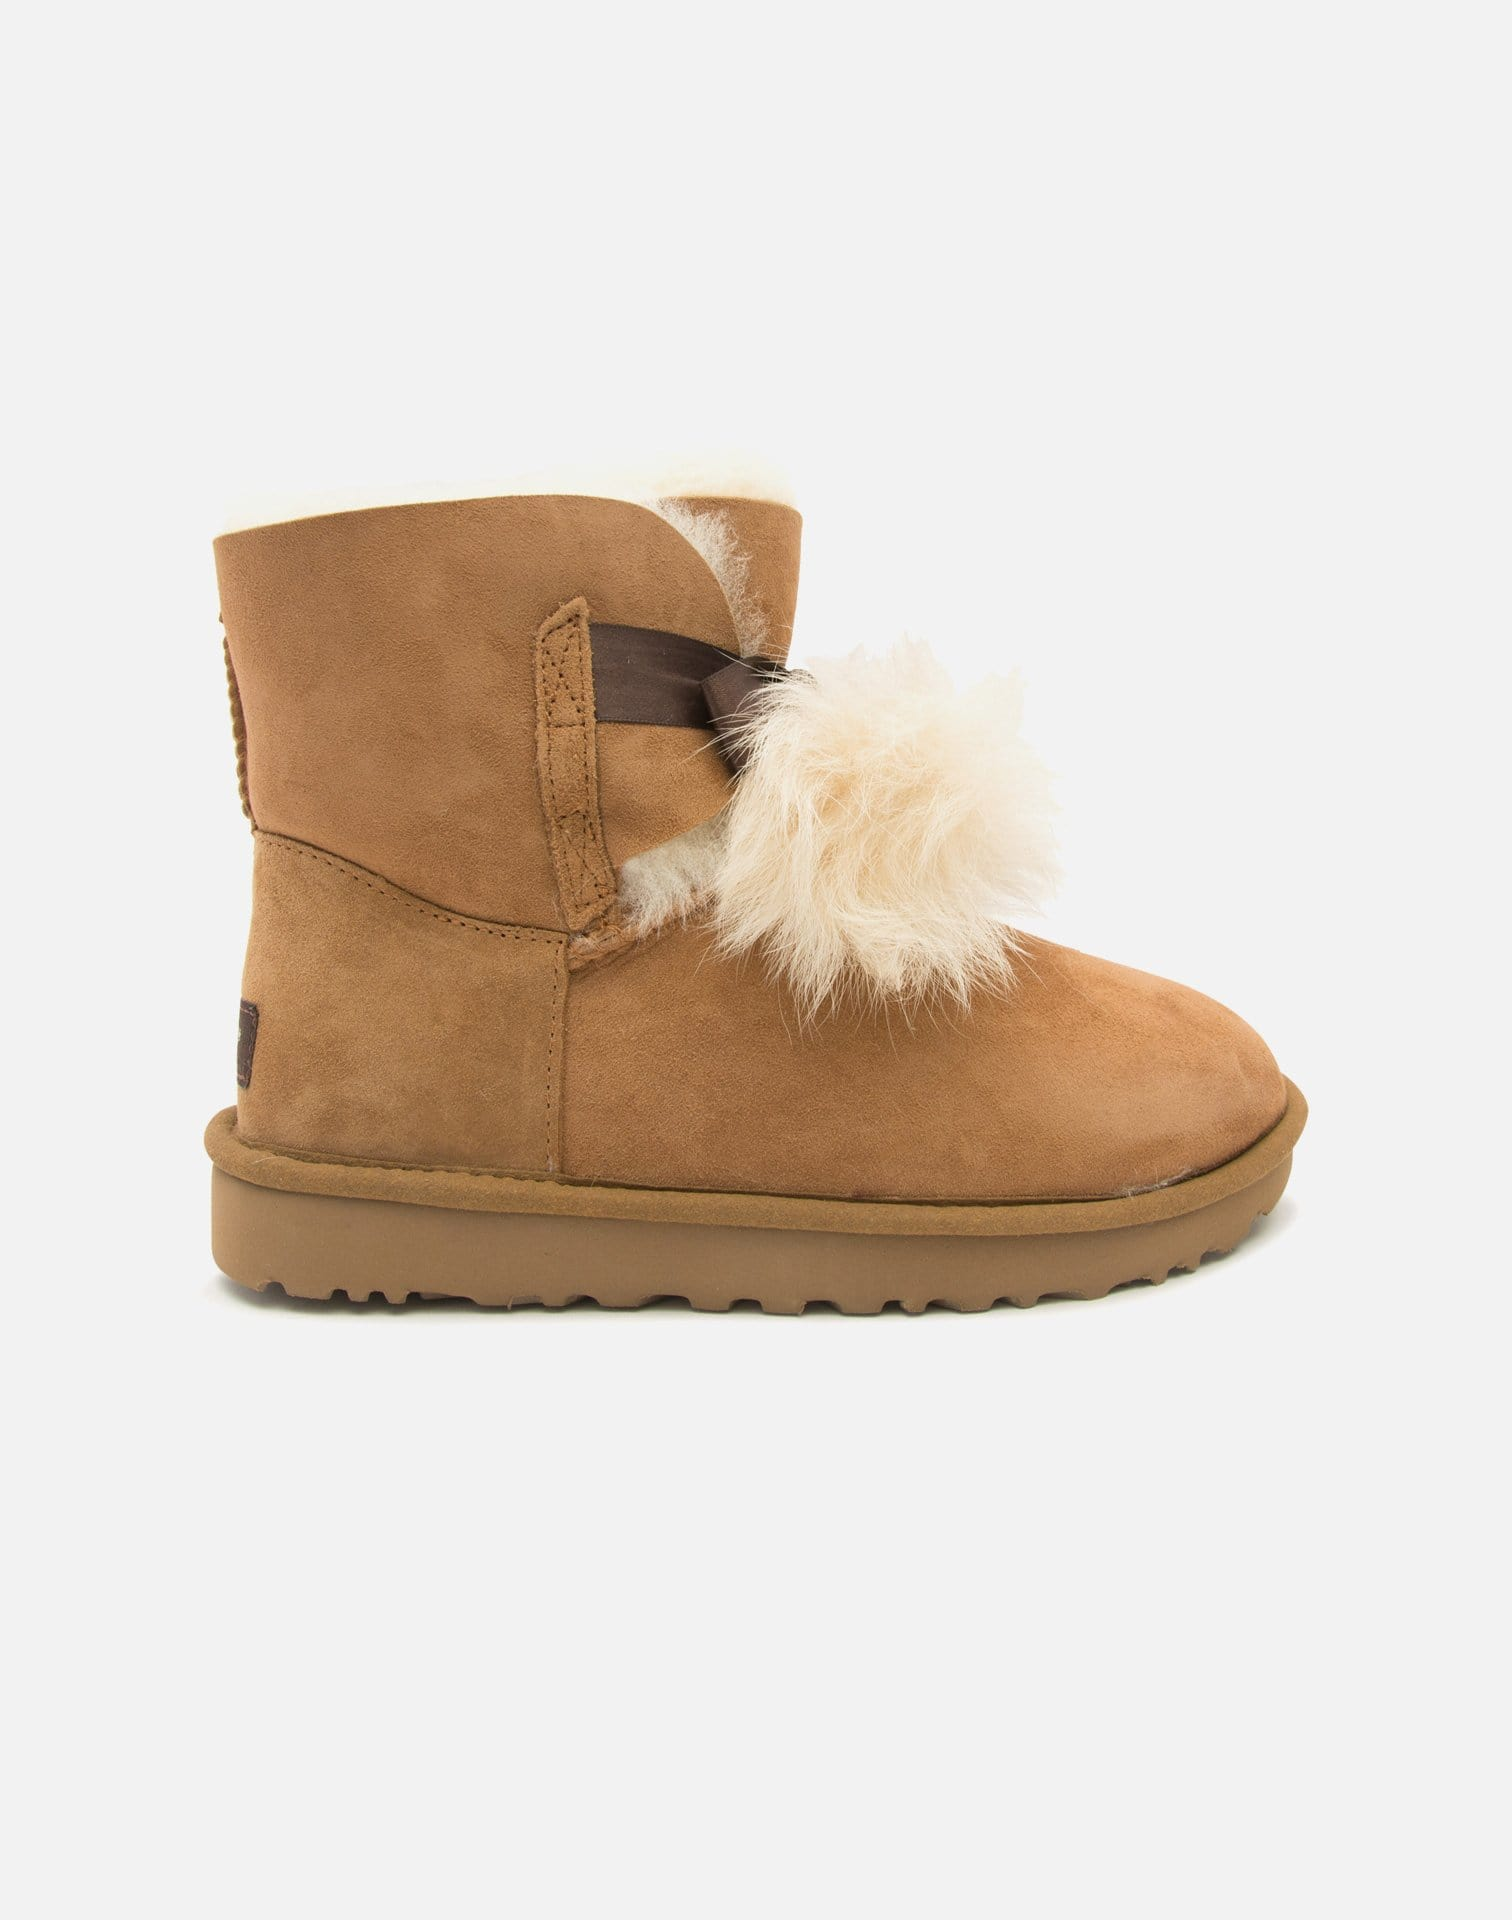 UGG Women's Gita Fur Ball Boots